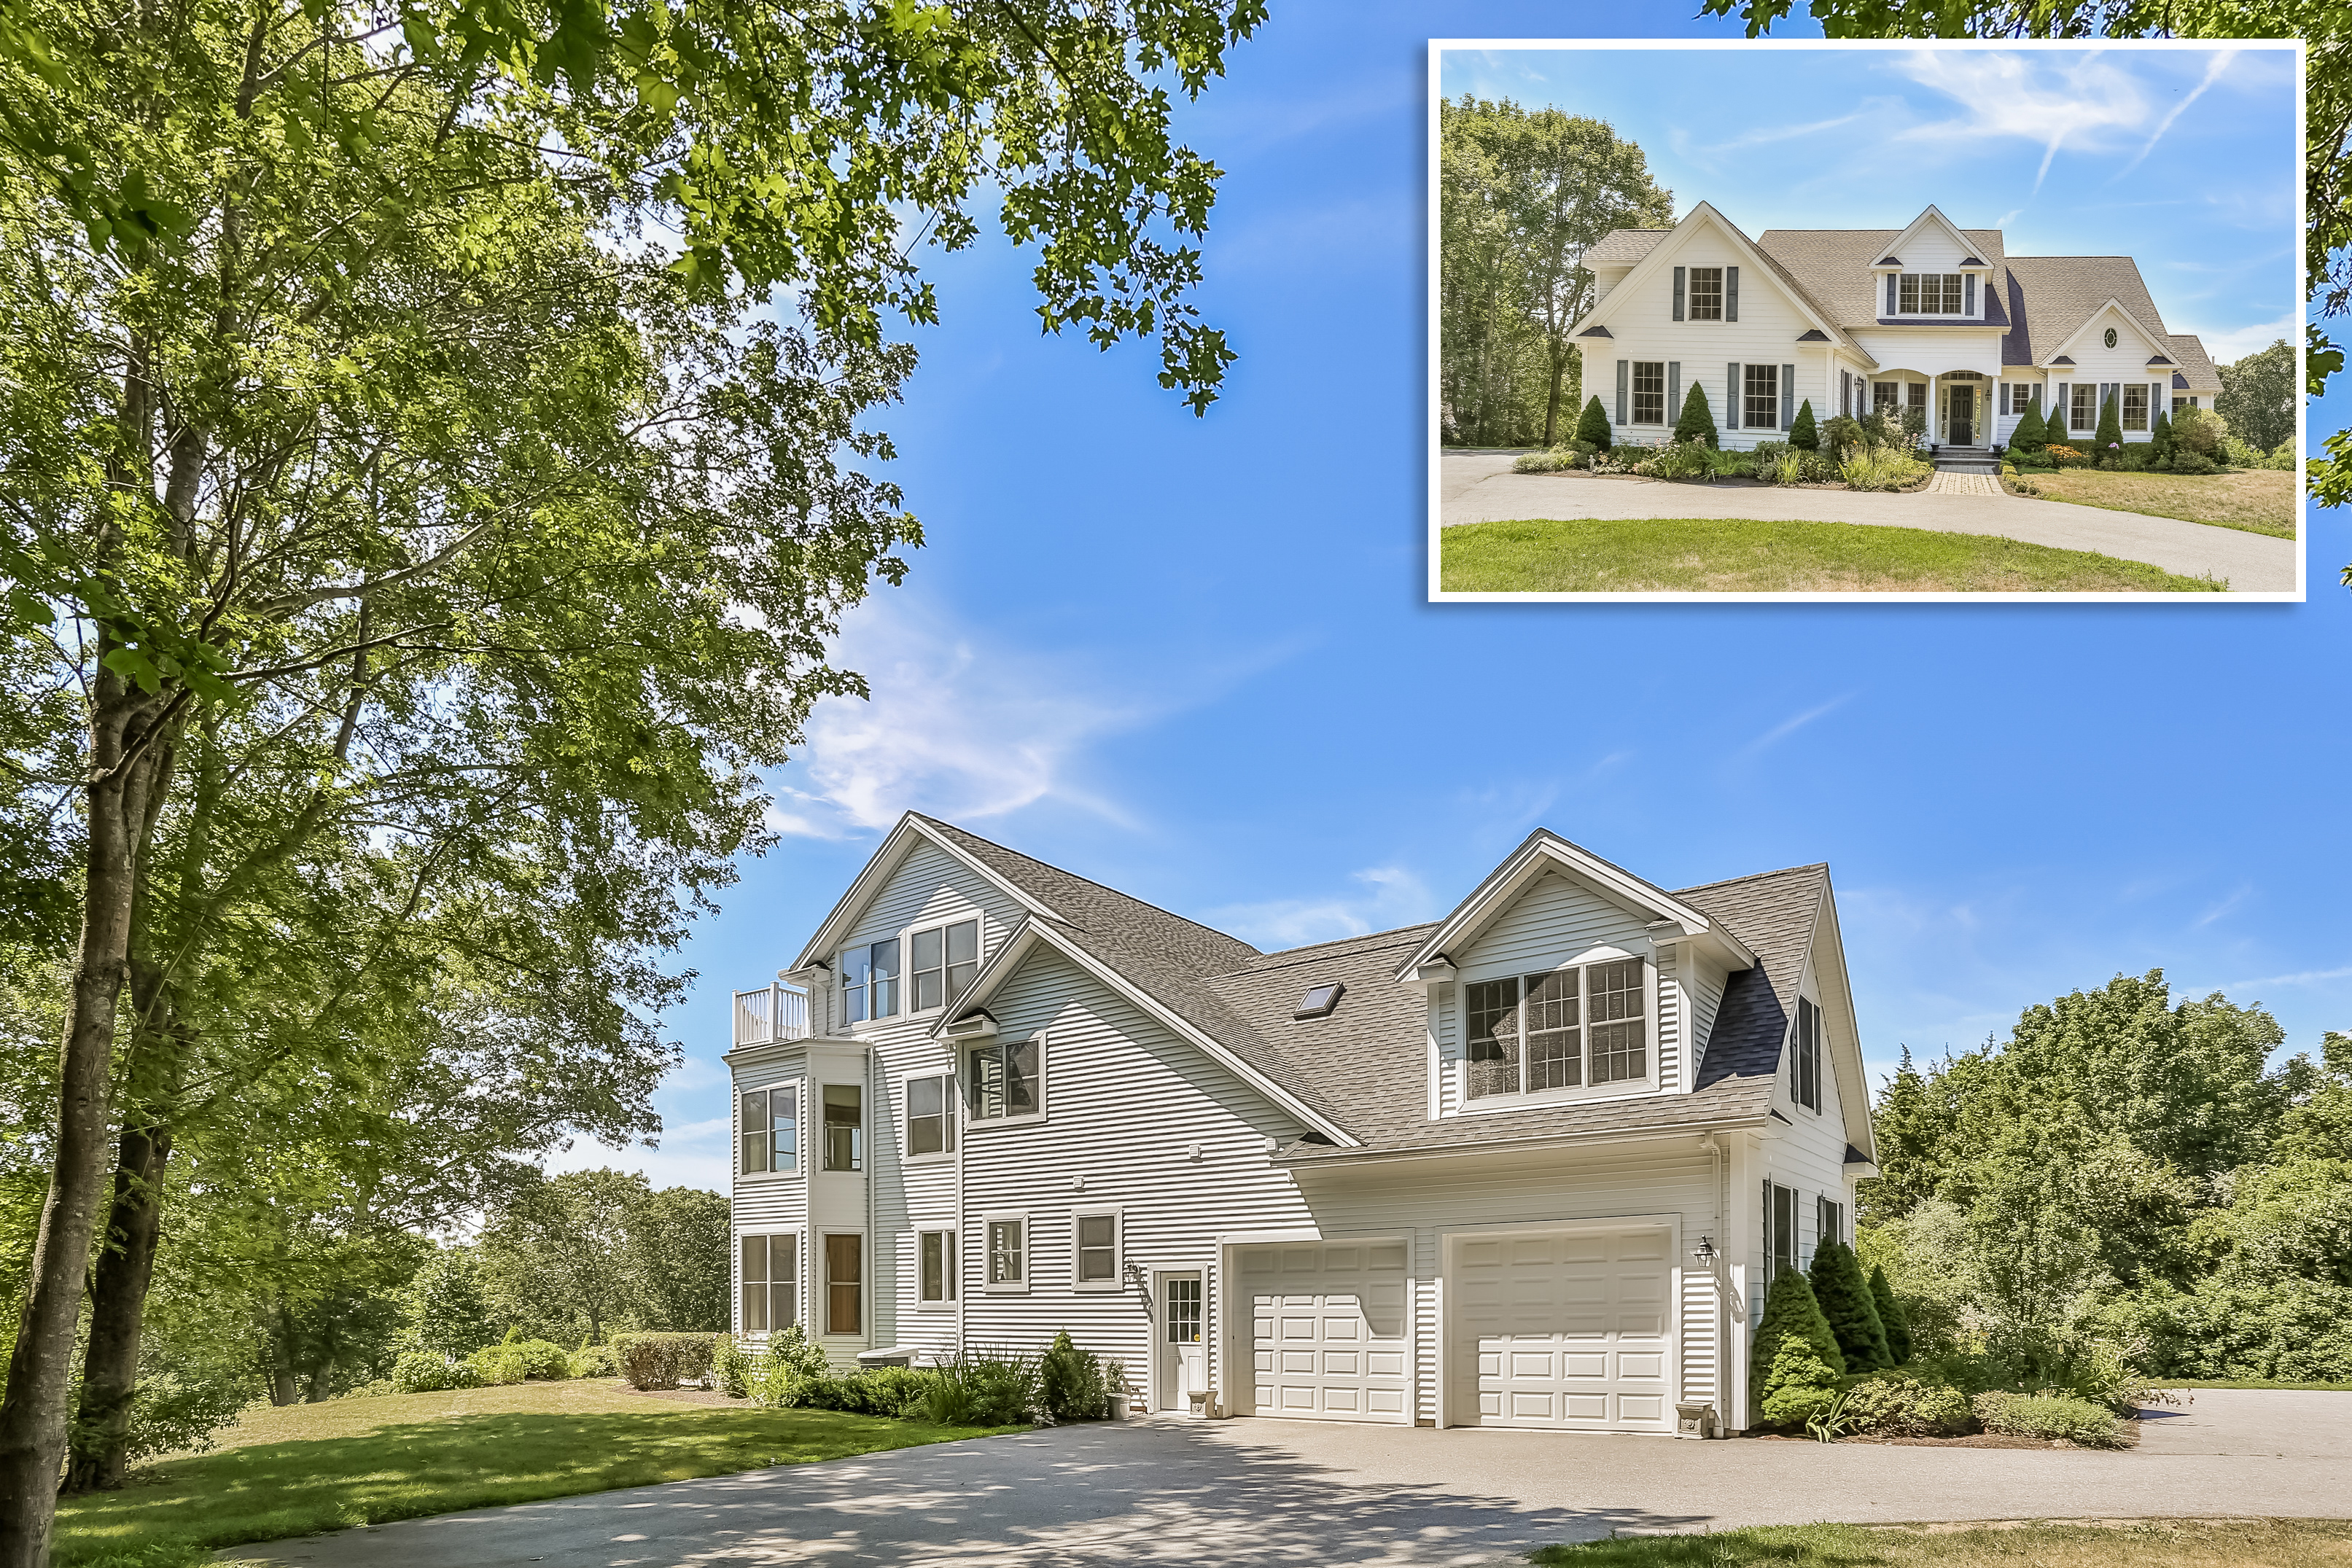 Single Family Home for Sale at Beautifully Appointed Custom Colonial 173 Montauk Ave Stonington, 06378 United States